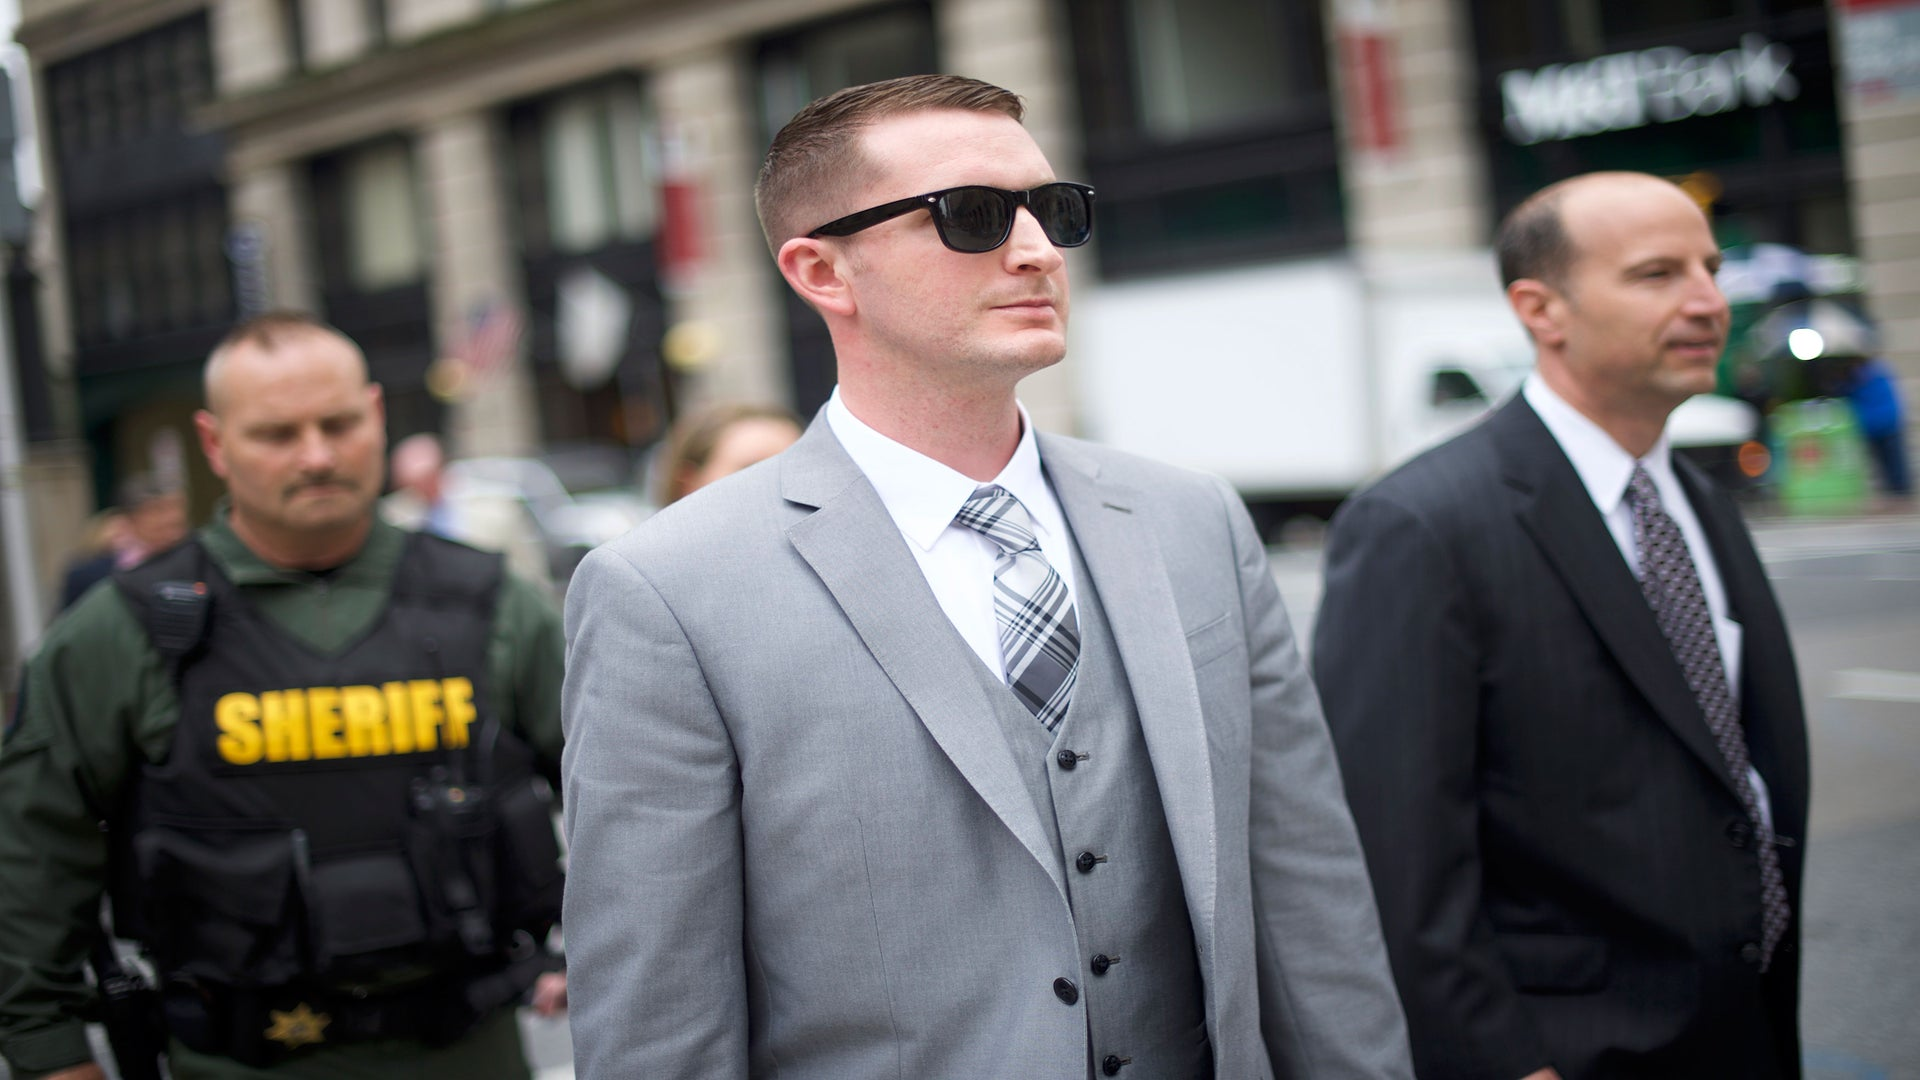 Second Police Officer Tried in Freddie Gray Case Acquitted on All Charges